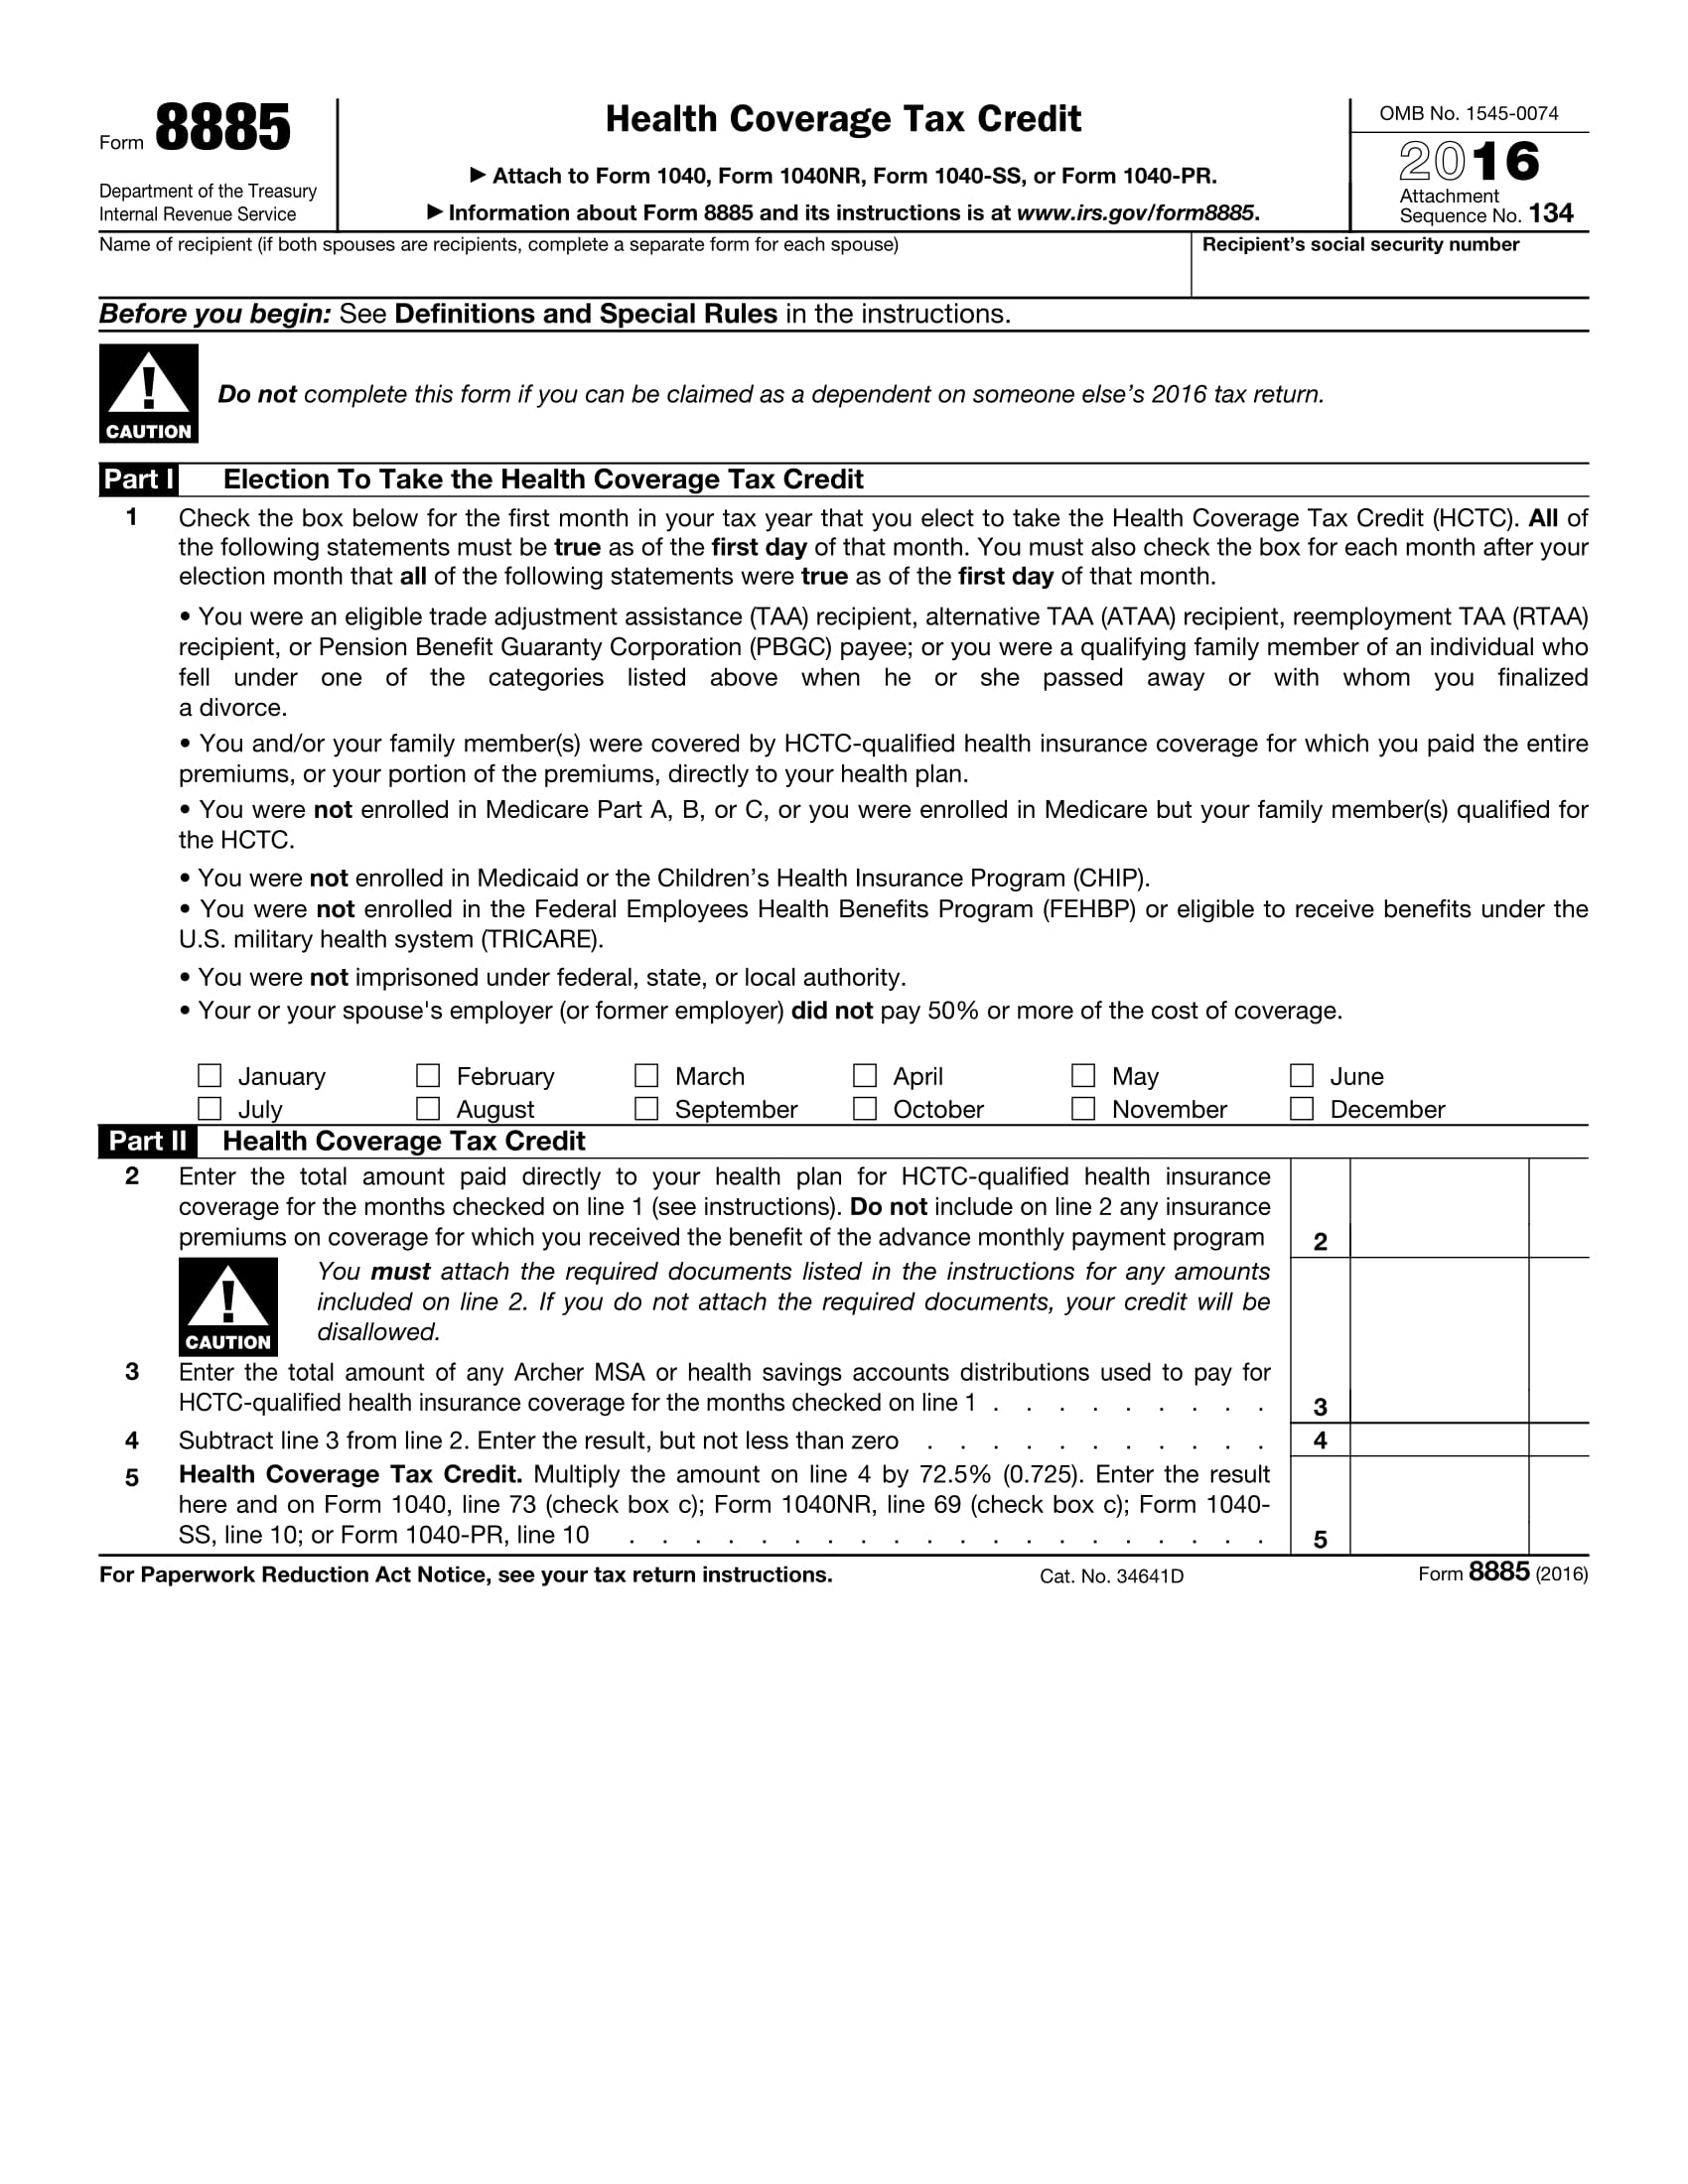 10+ Varieties of Tax Forms for Employers and Taxpayers